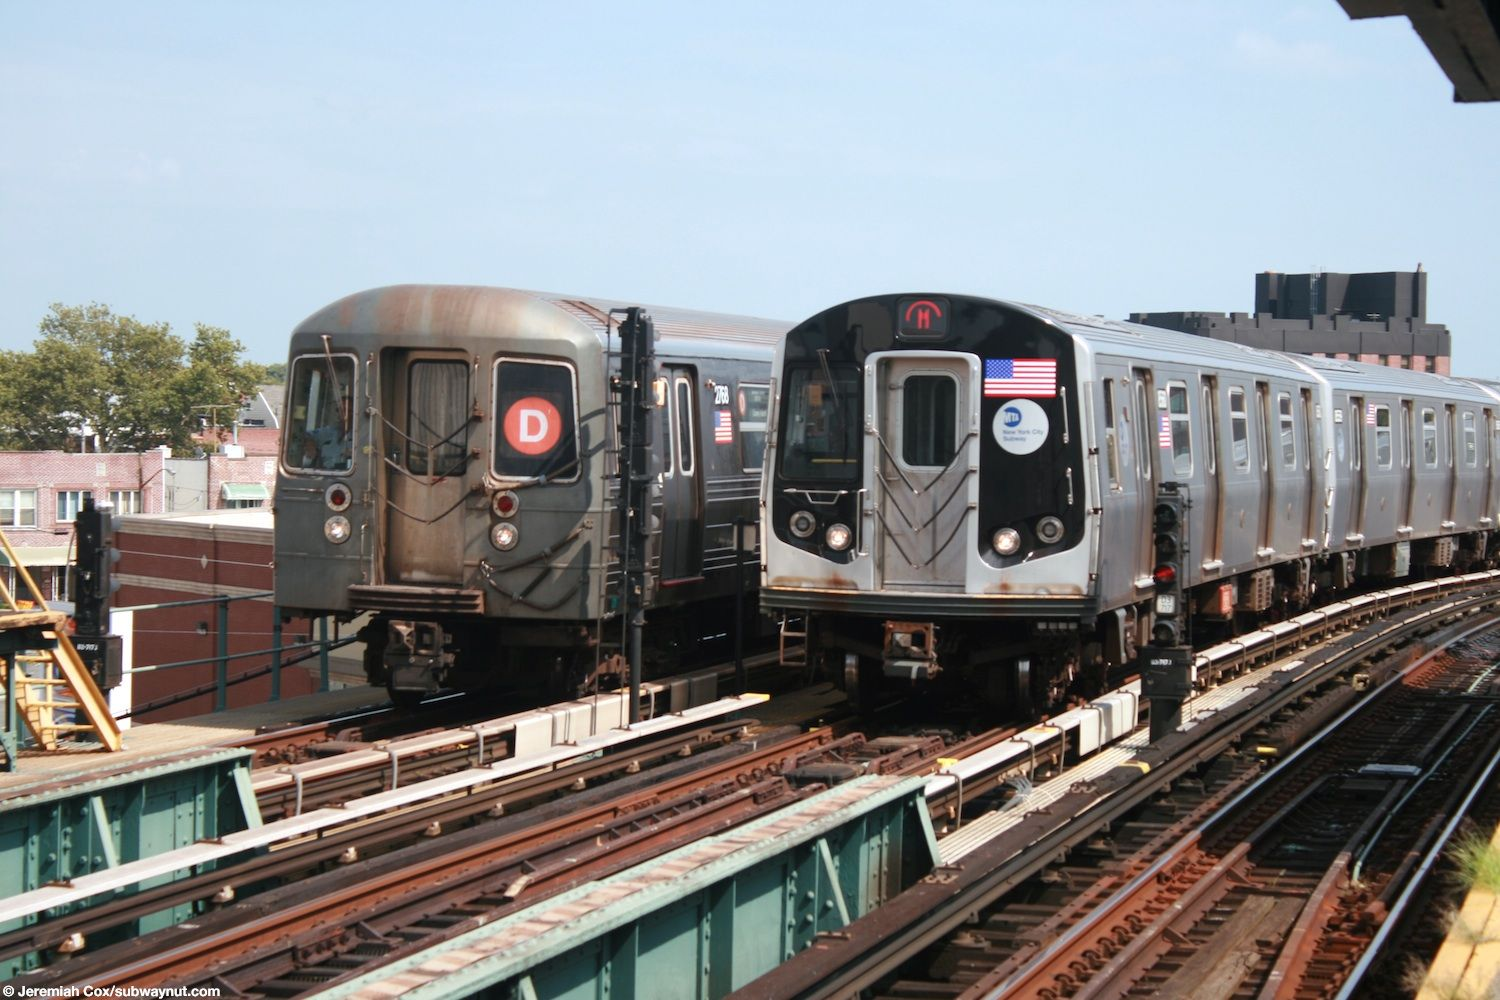 Manhattan-bound R68 #2768 and a D train pass R160 #8560, a